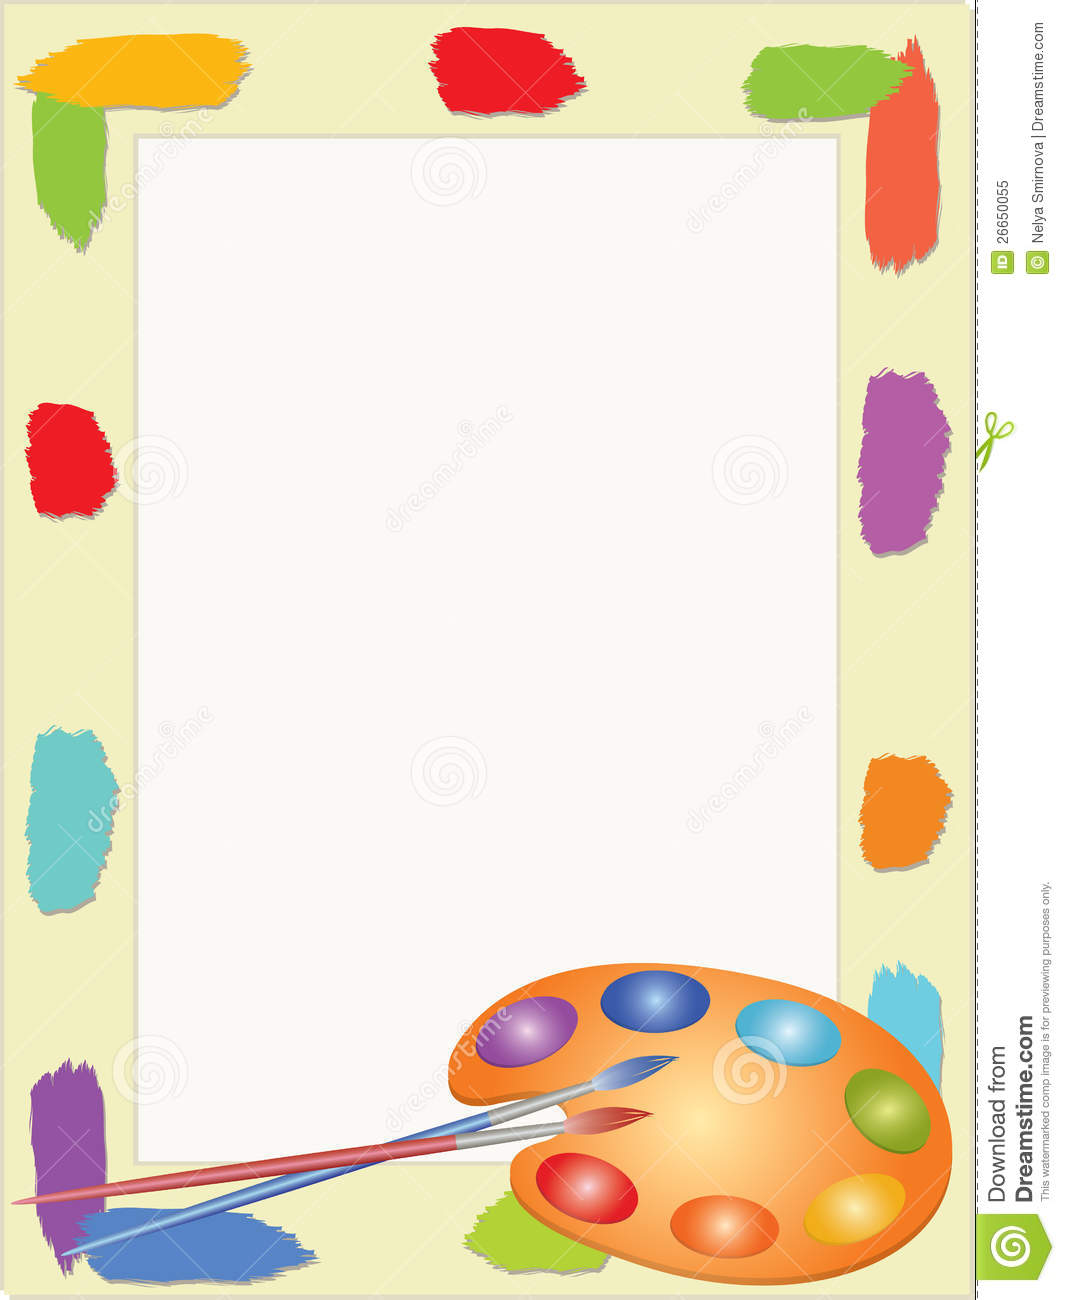 children frame with palette royalty free stock photo school kids clip art welcome school kids clipart birthday border